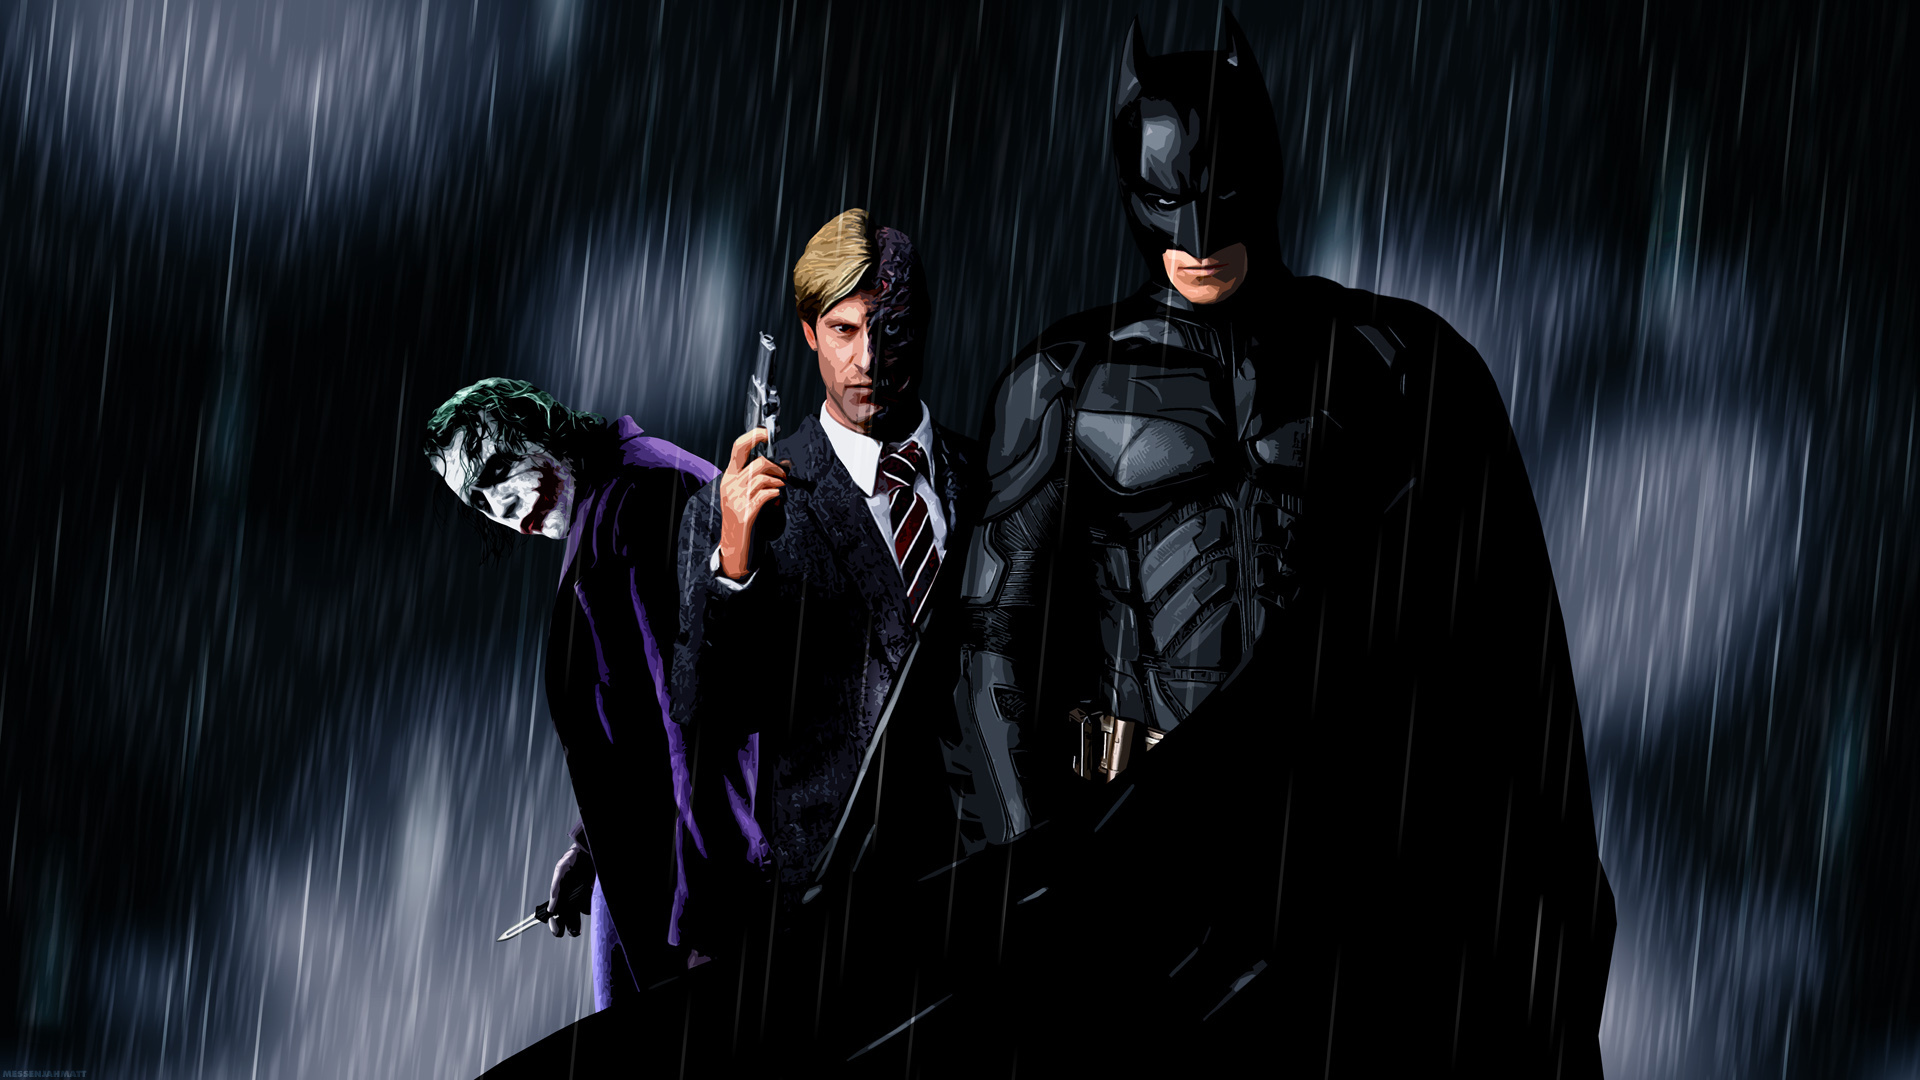 22791 download wallpaper Cinema, People, Men, Batman, Pictures screensavers and pictures for free